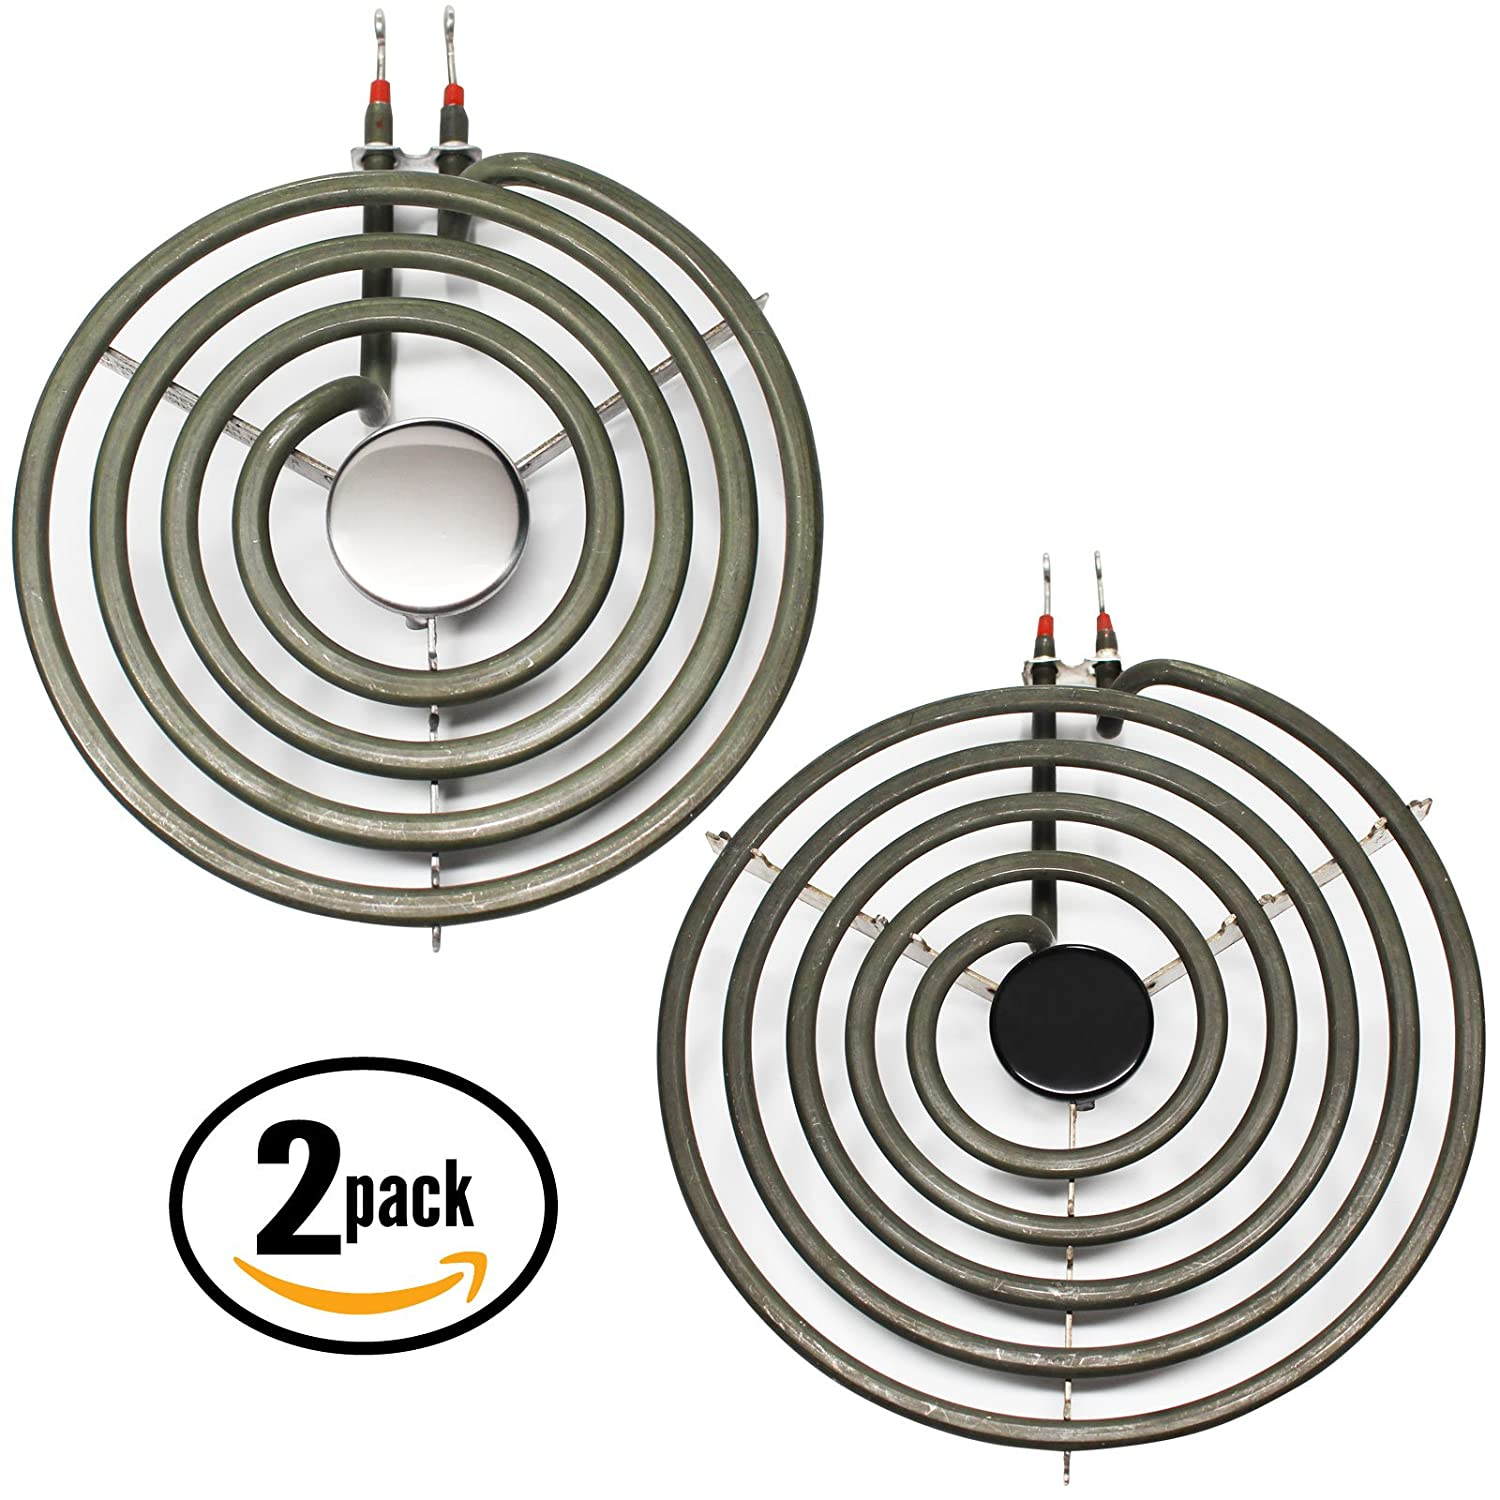 2-Pack Replacement Frigidaire FEF350BAWA 8 inch 5 Turns & 6 inch 4 Turns Surface Burner Elements - Compatible Frigidaire 316442301 & 316439801 Heating Element for Range, Stove & Cooktop